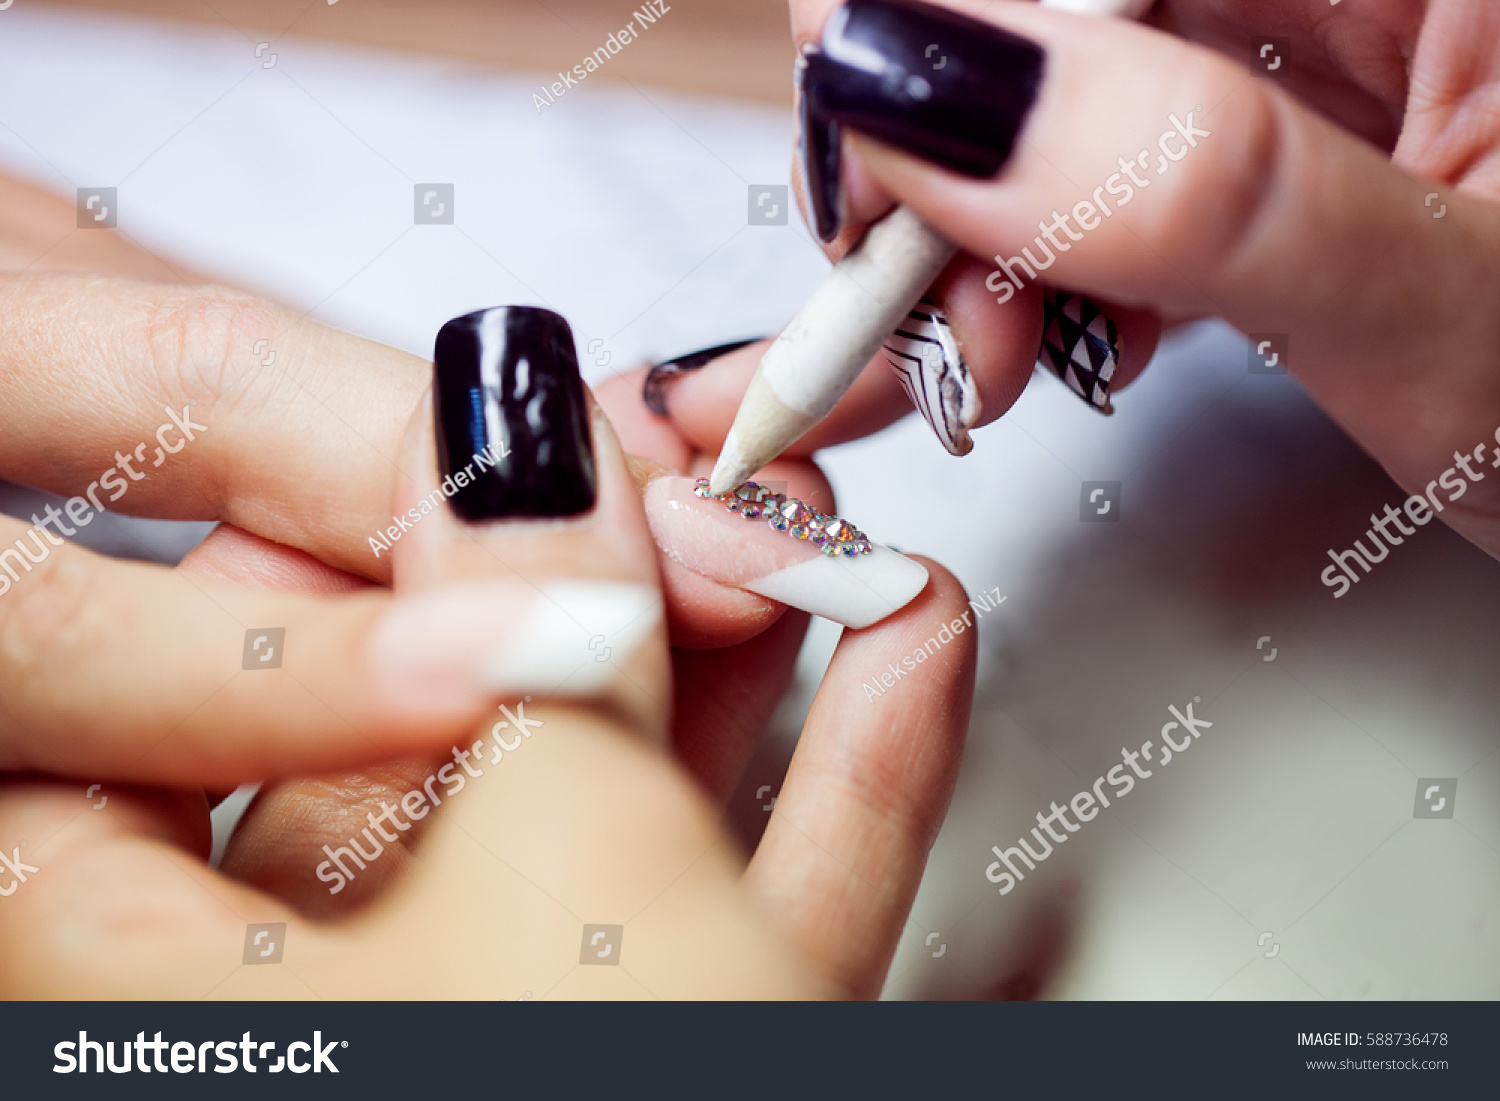 Drawing on nails